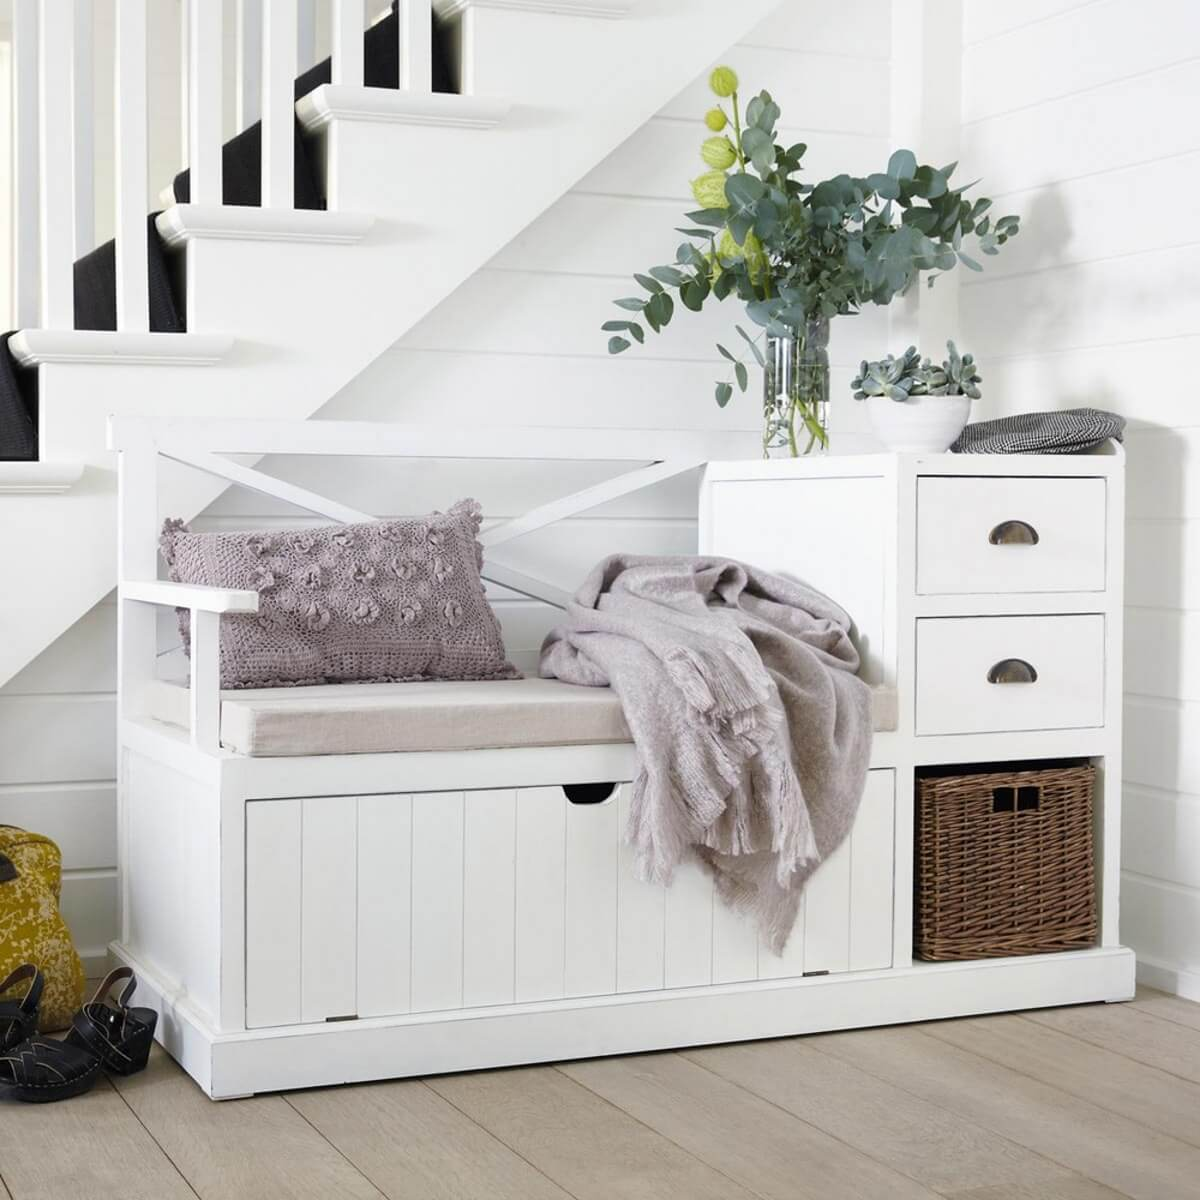 White storage bench with cupboard, basket and 2 drawers